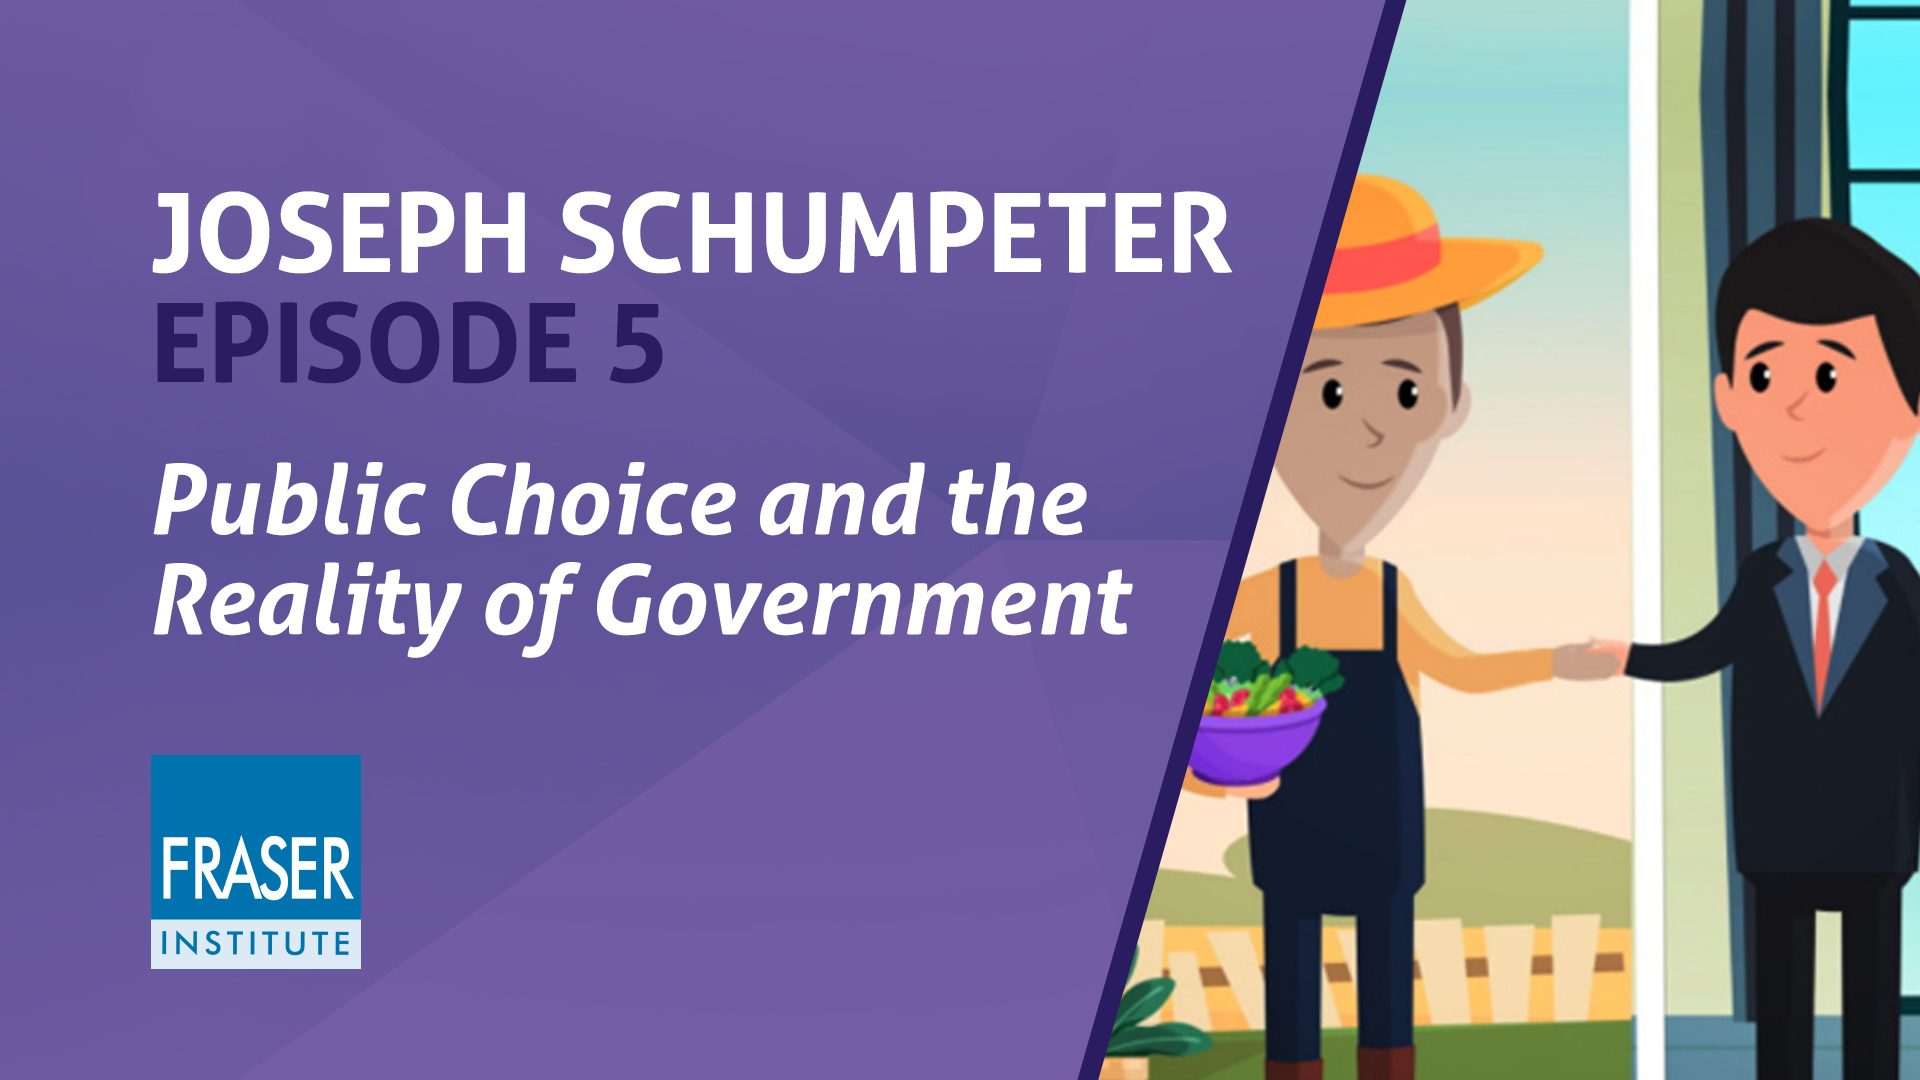 Public Choice and the Reality of Government